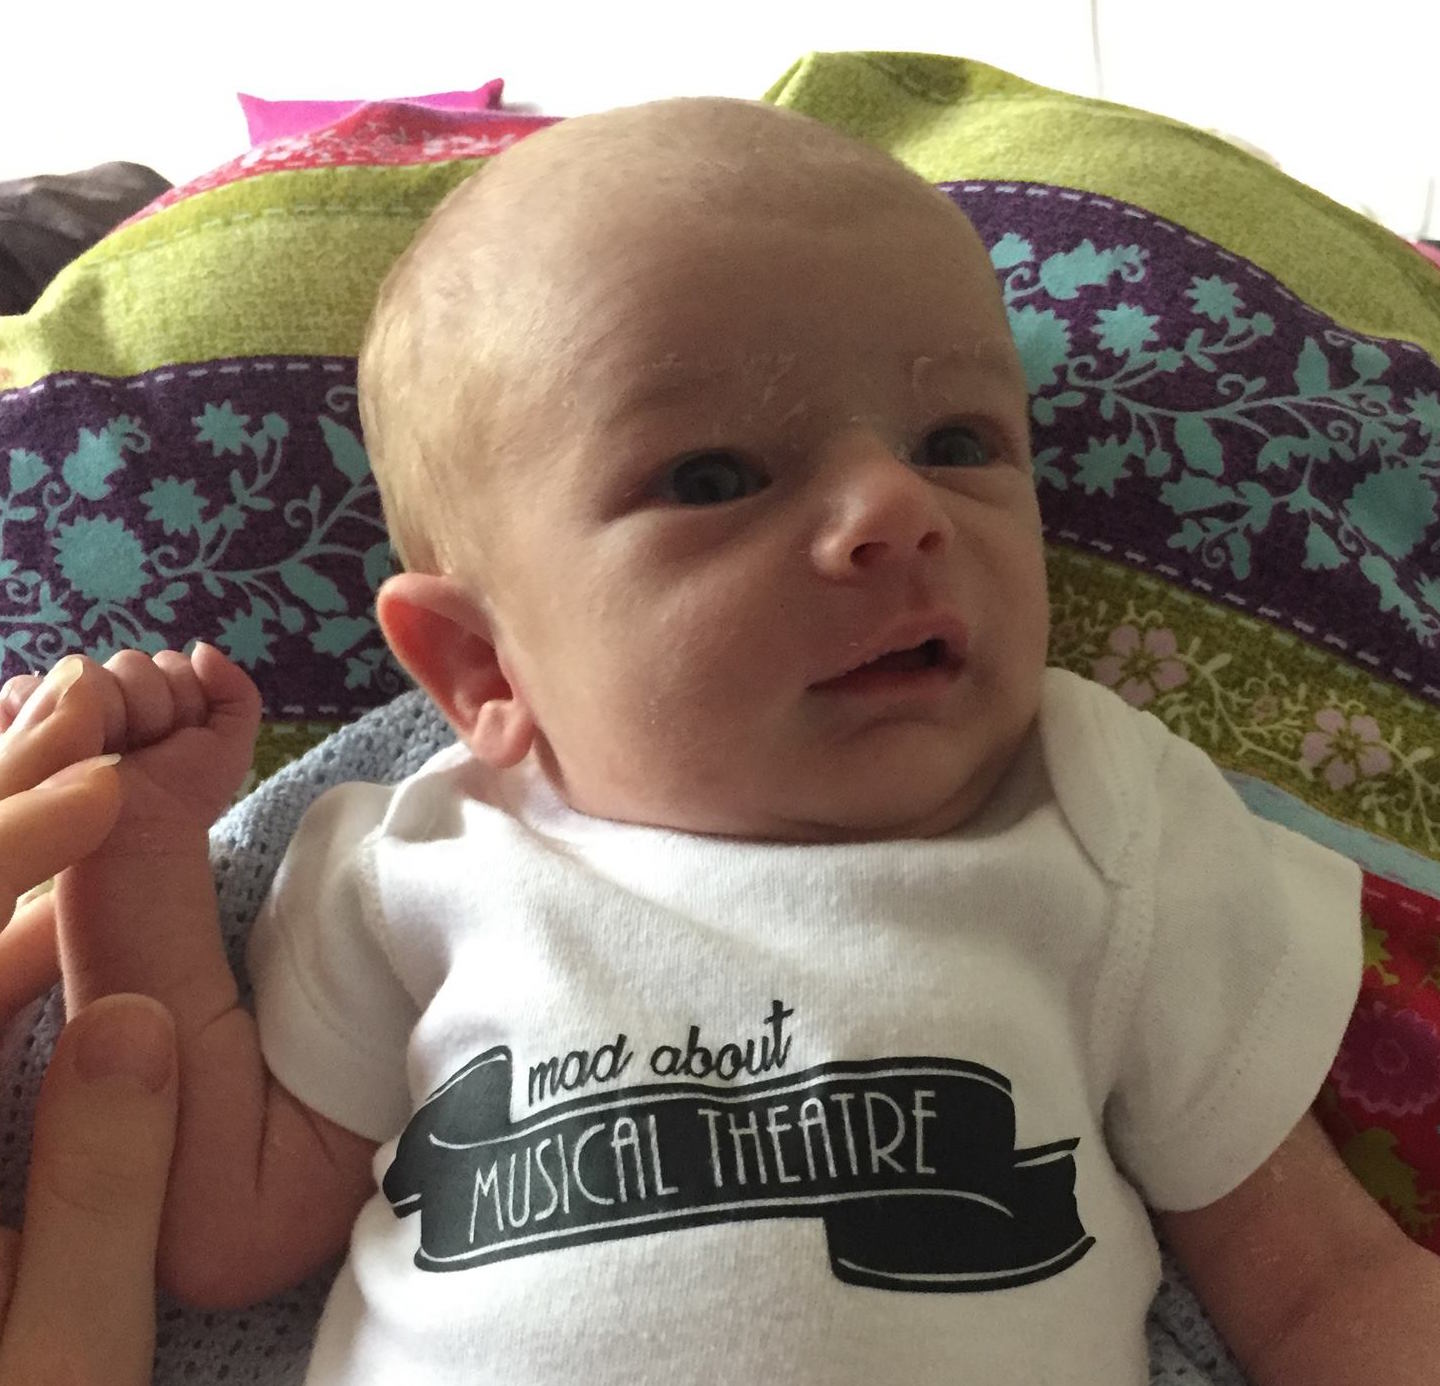 Mad about musical theatre: clearly Emily's son did love all that music he heard during pregnancy